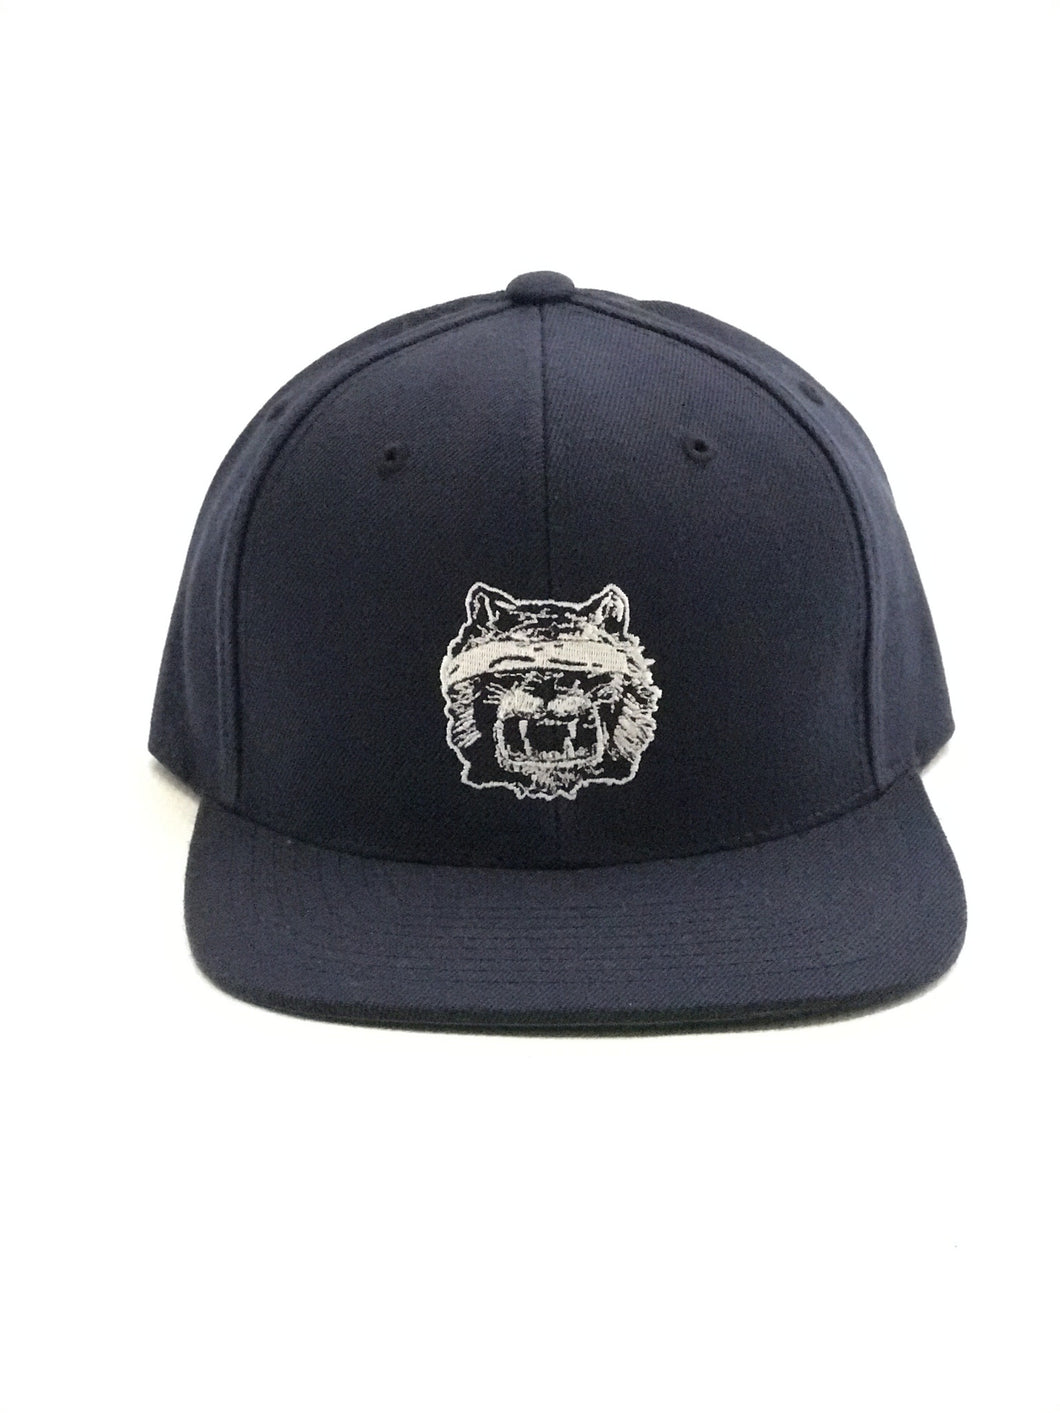 Blind Tiger Hat - Black